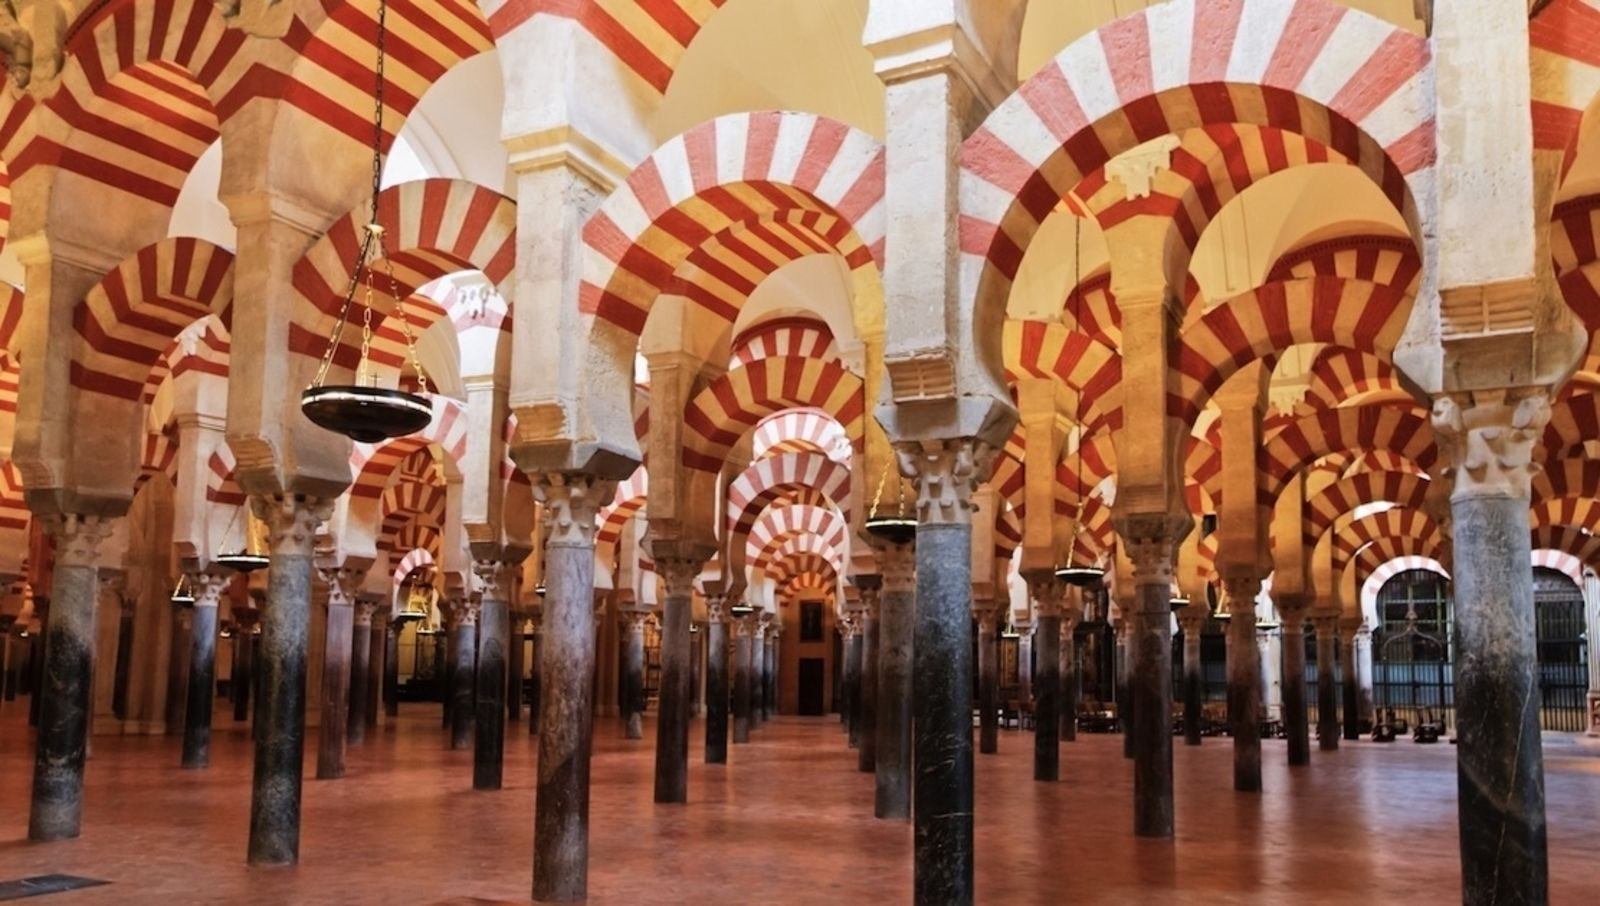 Luxury Cordoba guided tour from Granada finishing in Seville